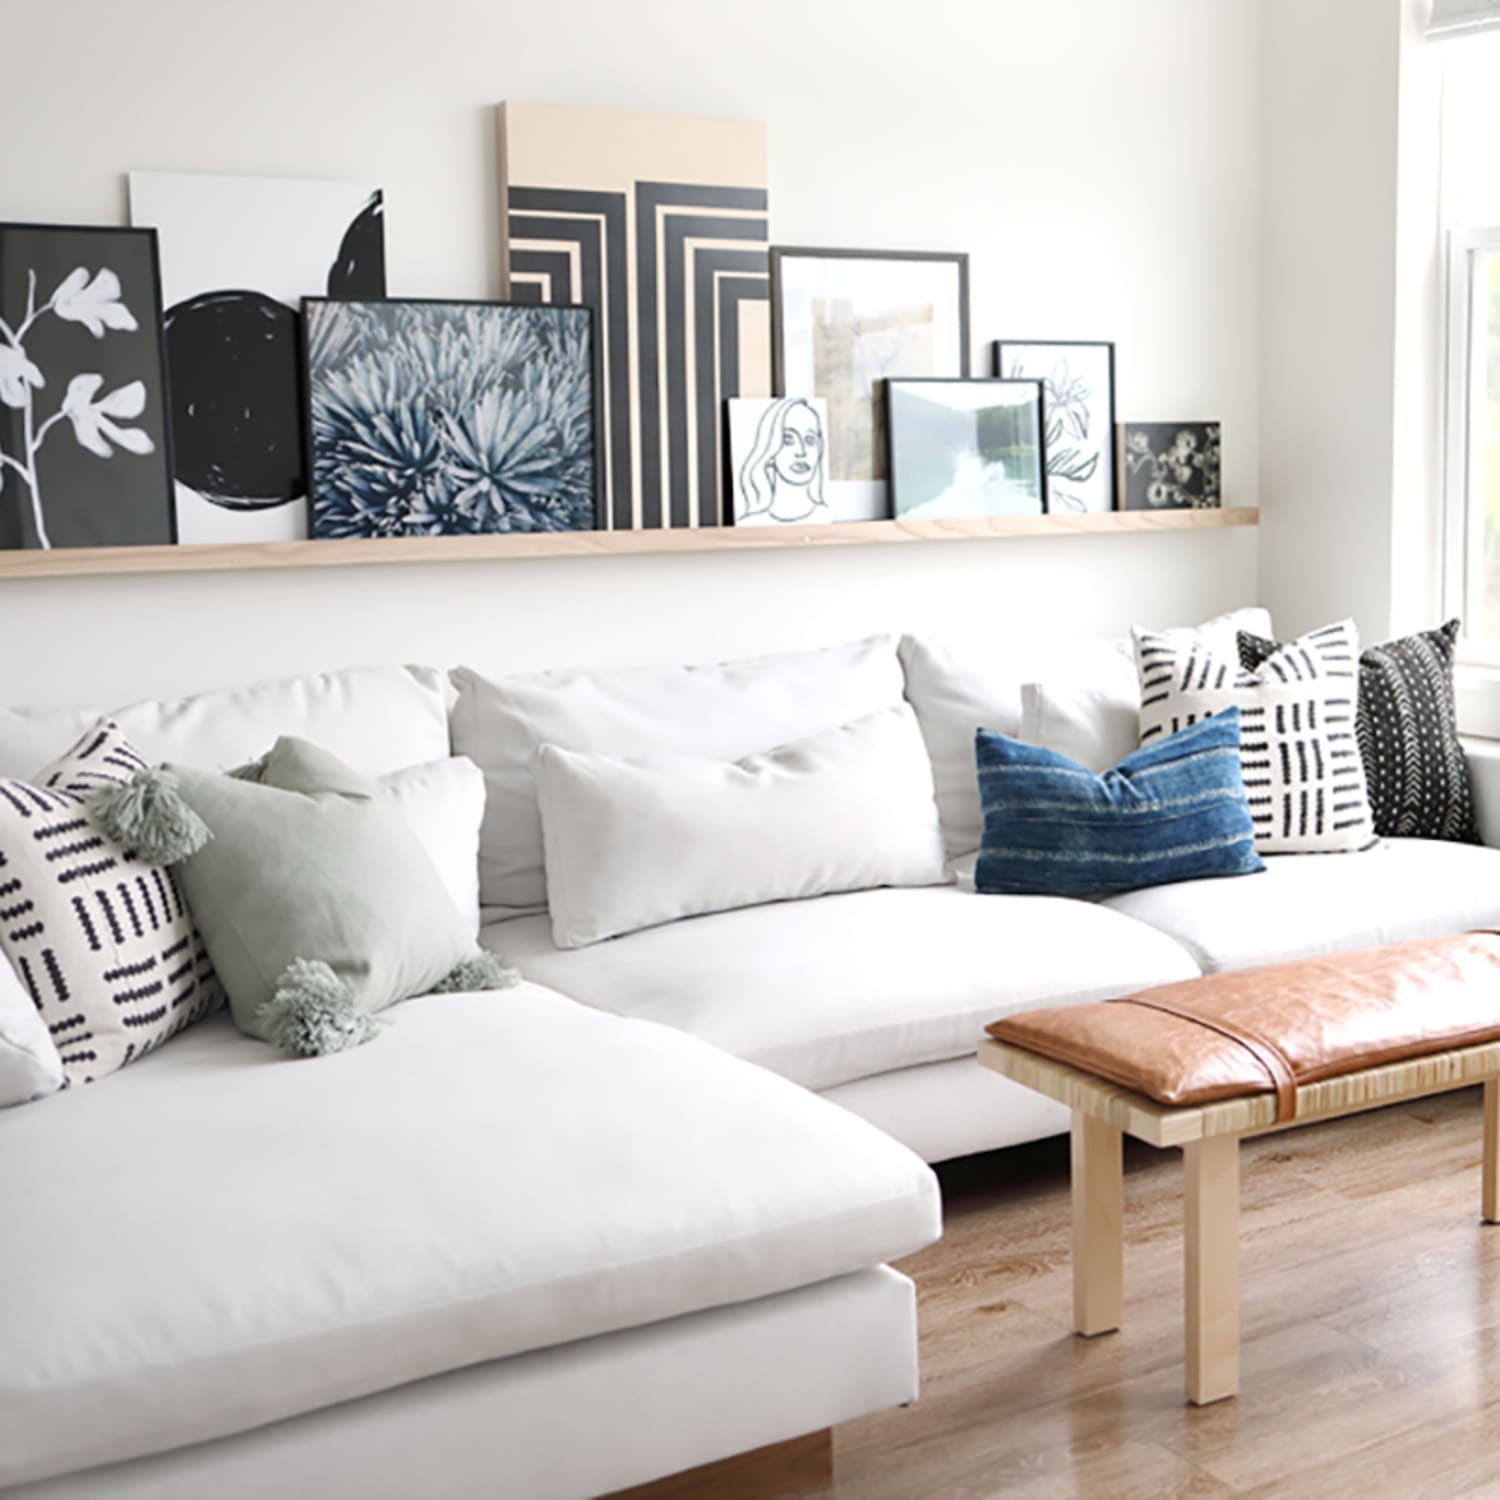 Ikea Hacks That Look Like Expensive Living Room Decor Apartment Therapy